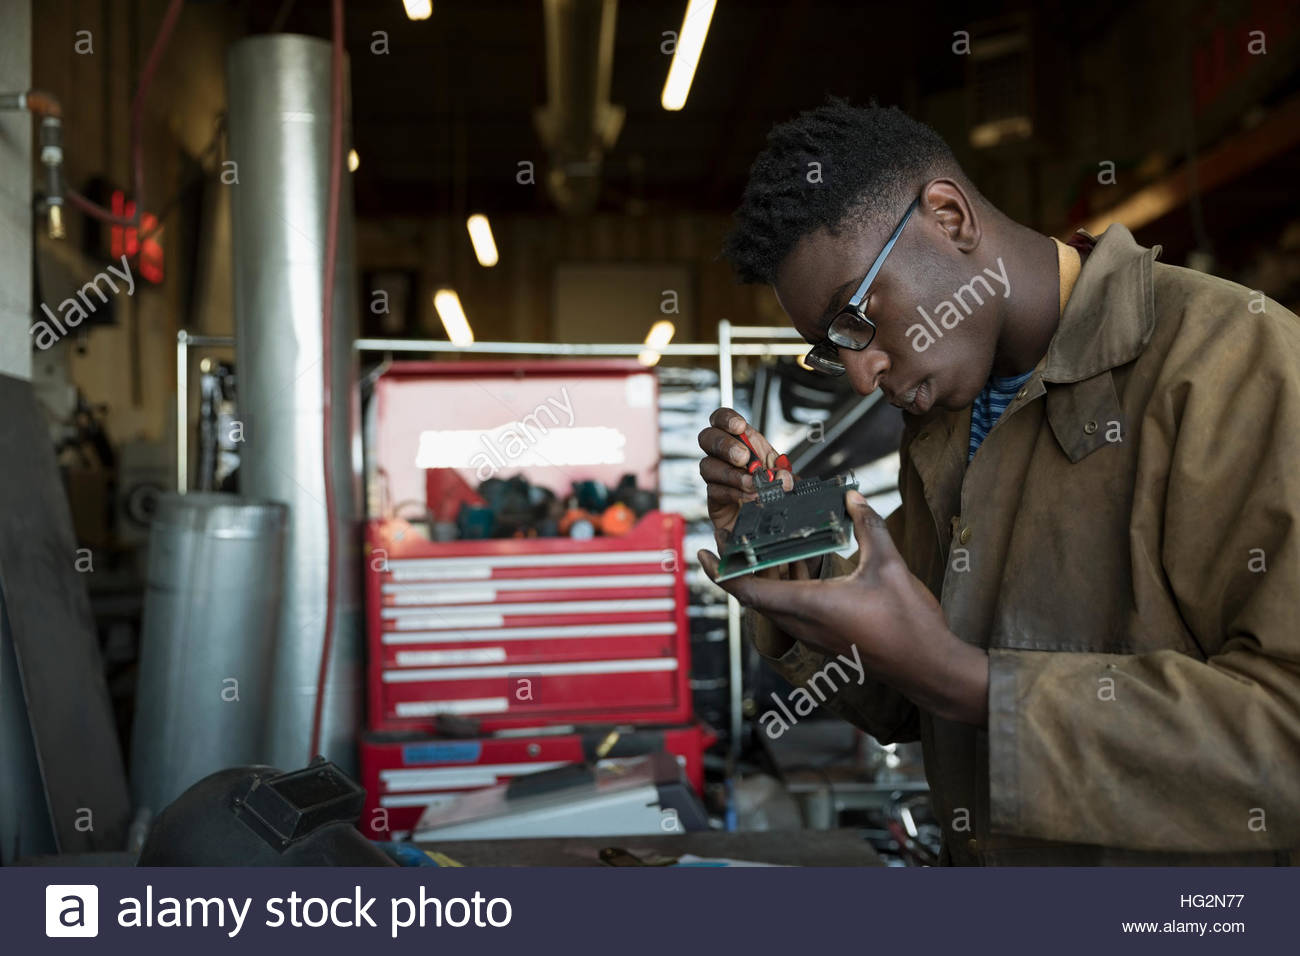 Engineer assembling electronics component in workshop - Stock Image